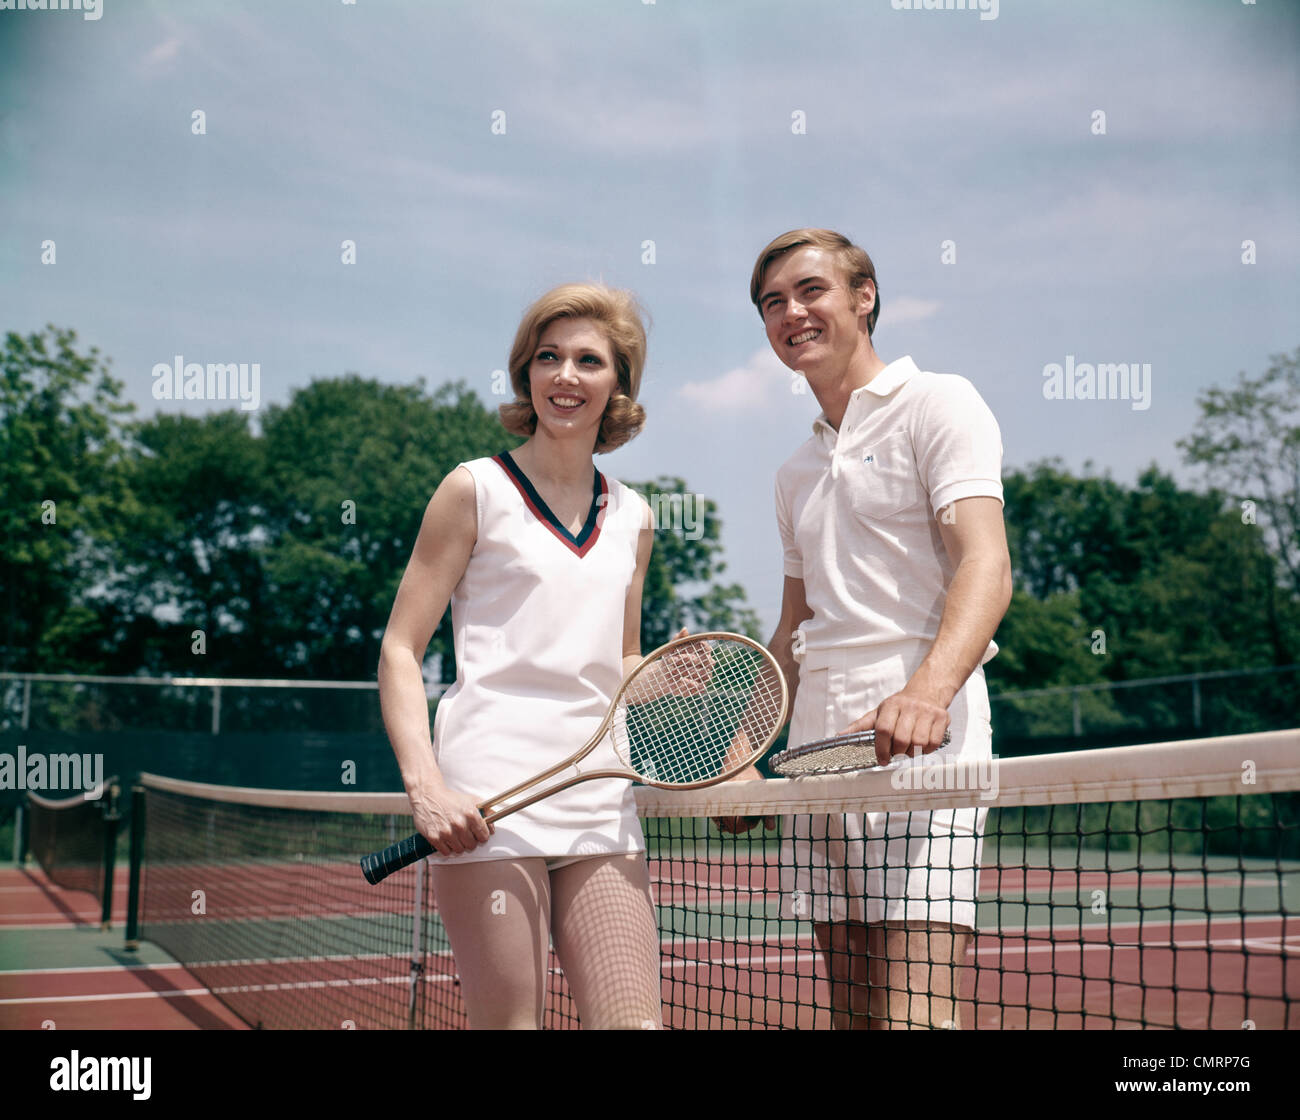 1970 1970s RETRO SMILING COUPLE MAN WOMAN STANDING ON OPPOSITE SIDES OF NET TENNIS COURT HOLDING RACKETS RECREATION - Stock Image